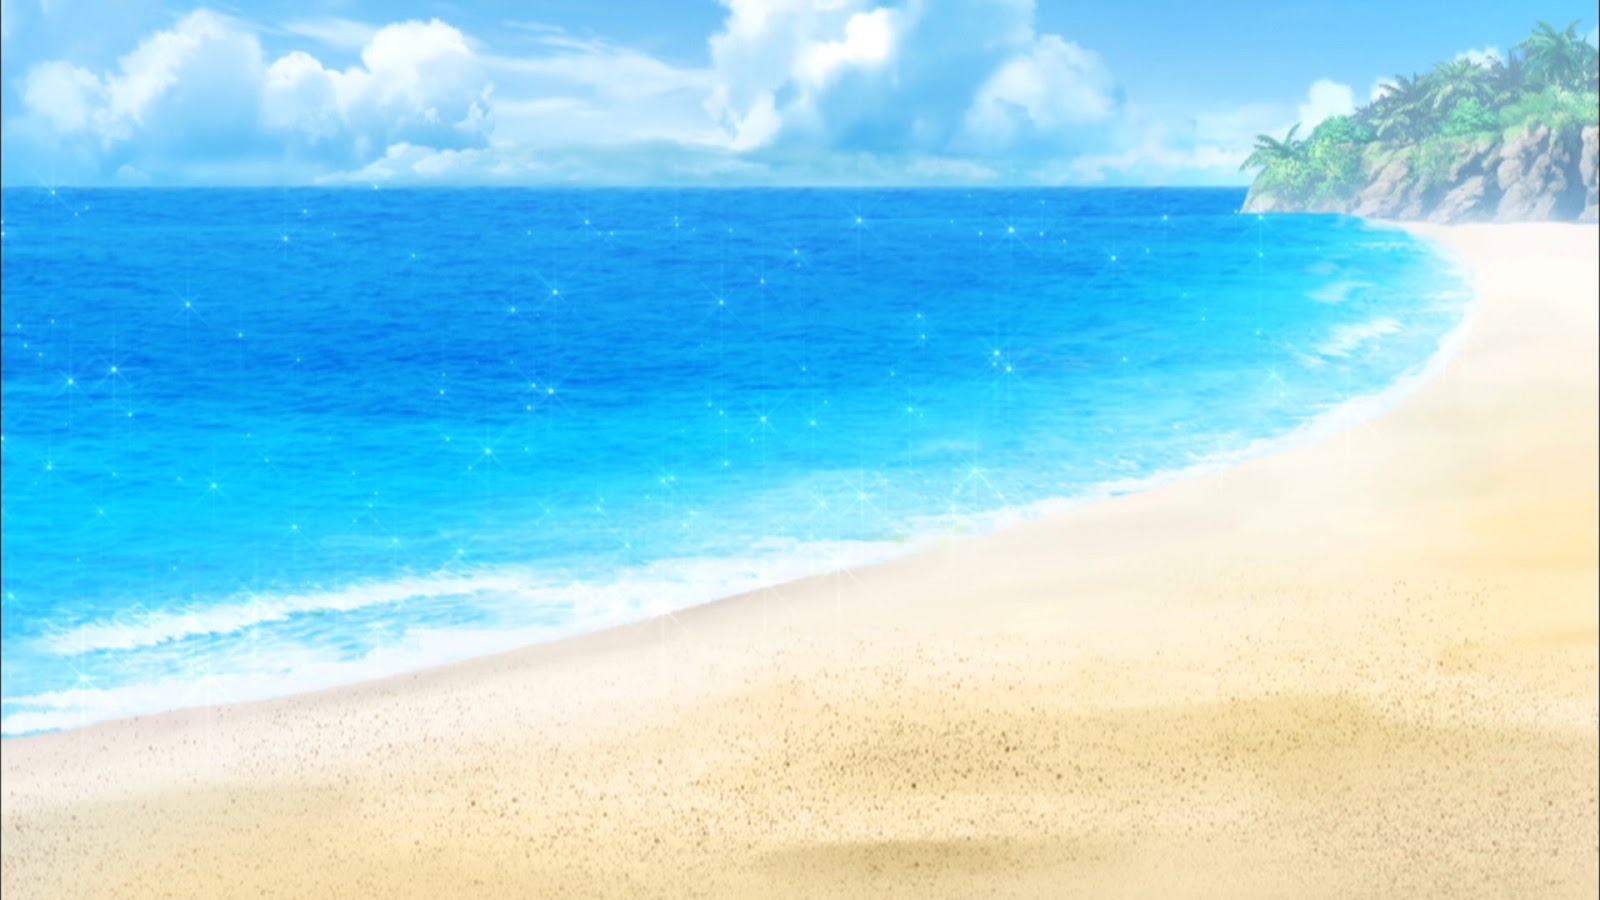 Anime Landscape Anime Beach Background Wallpapers in ultra hd 4k 3840x2160, 1920x1080 high definition resolutions. anime landscape anime beach background